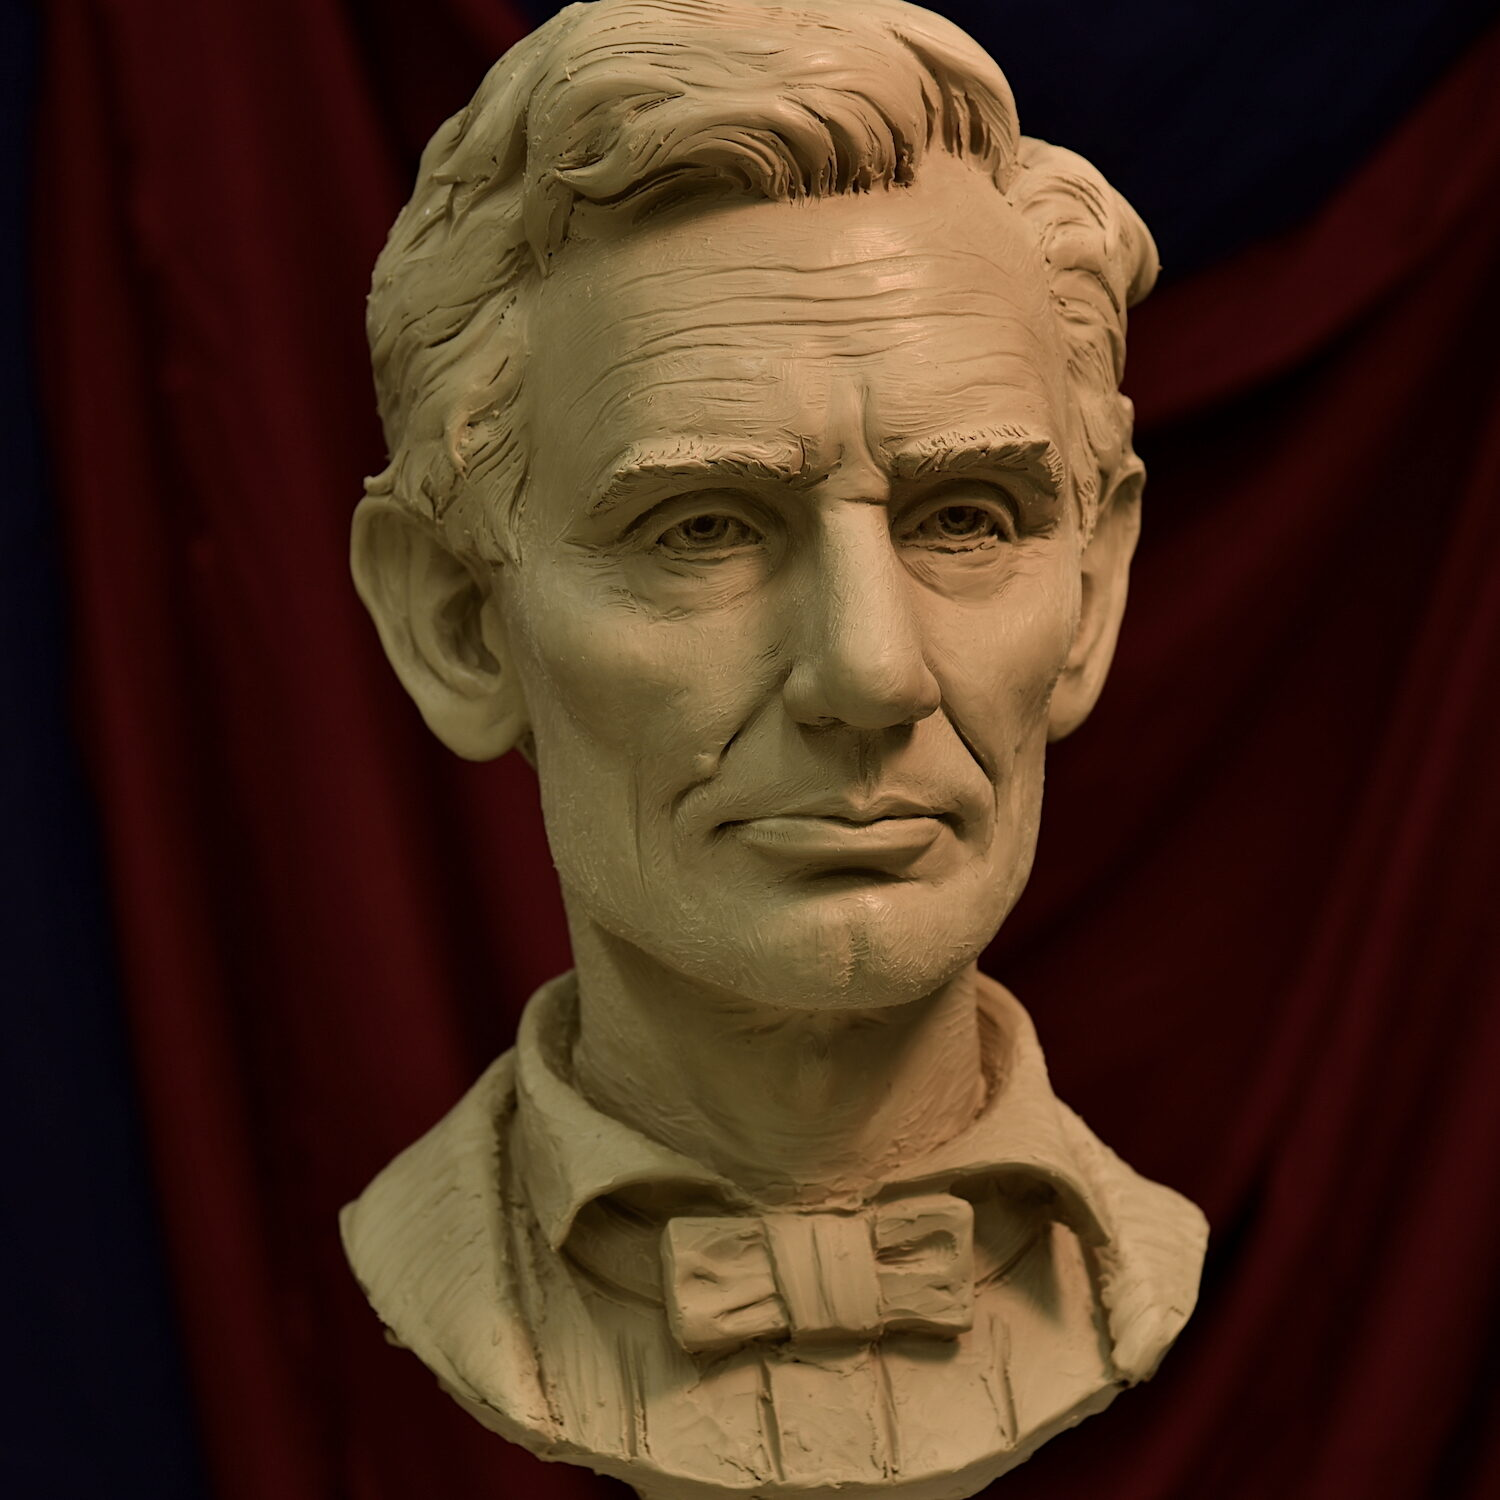 Sutton Betti, Abraham Lincoln sculpture bust, bust, portrait bust, clay sculpture